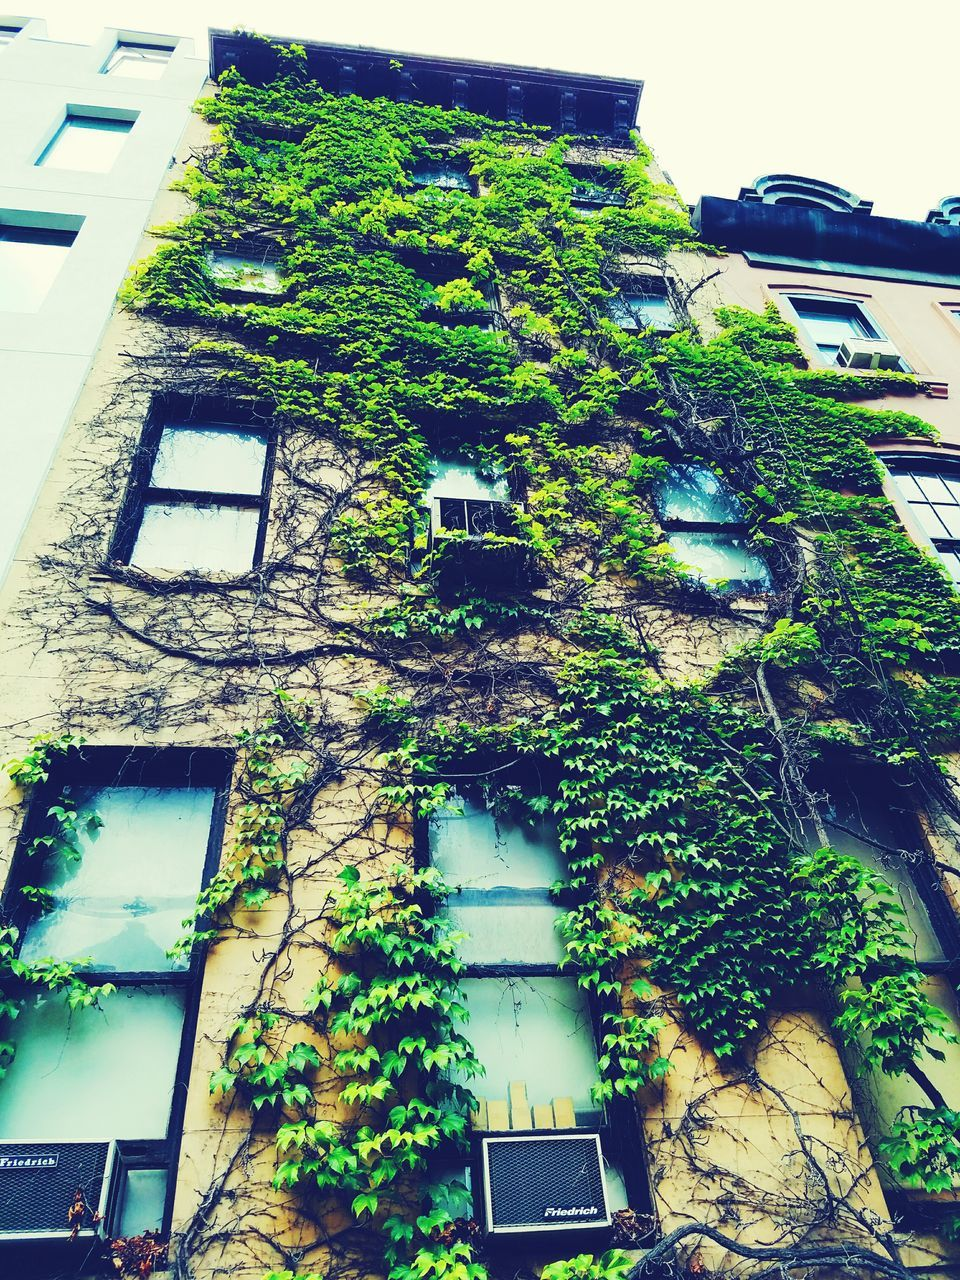 architecture, building exterior, ivy, built structure, creeper, tree, low angle view, day, no people, outdoors, creeper plant, plant, window, growth, green color, nature, close-up, sky